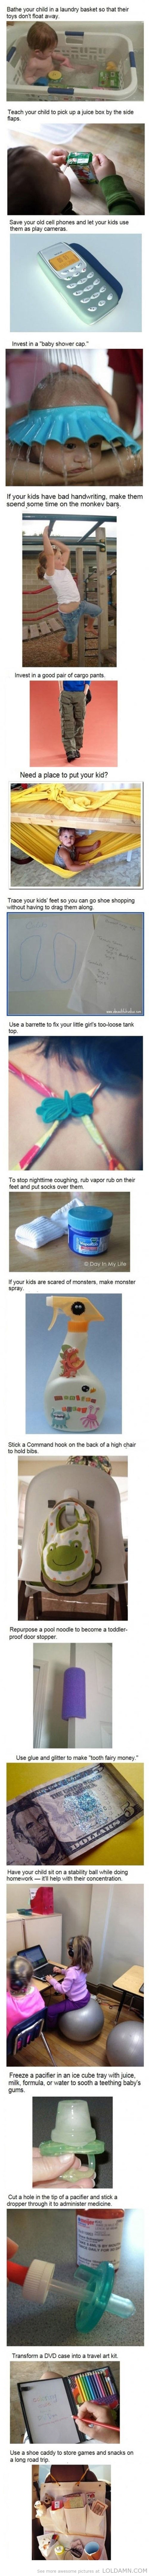 Parenting tips, doing it right…